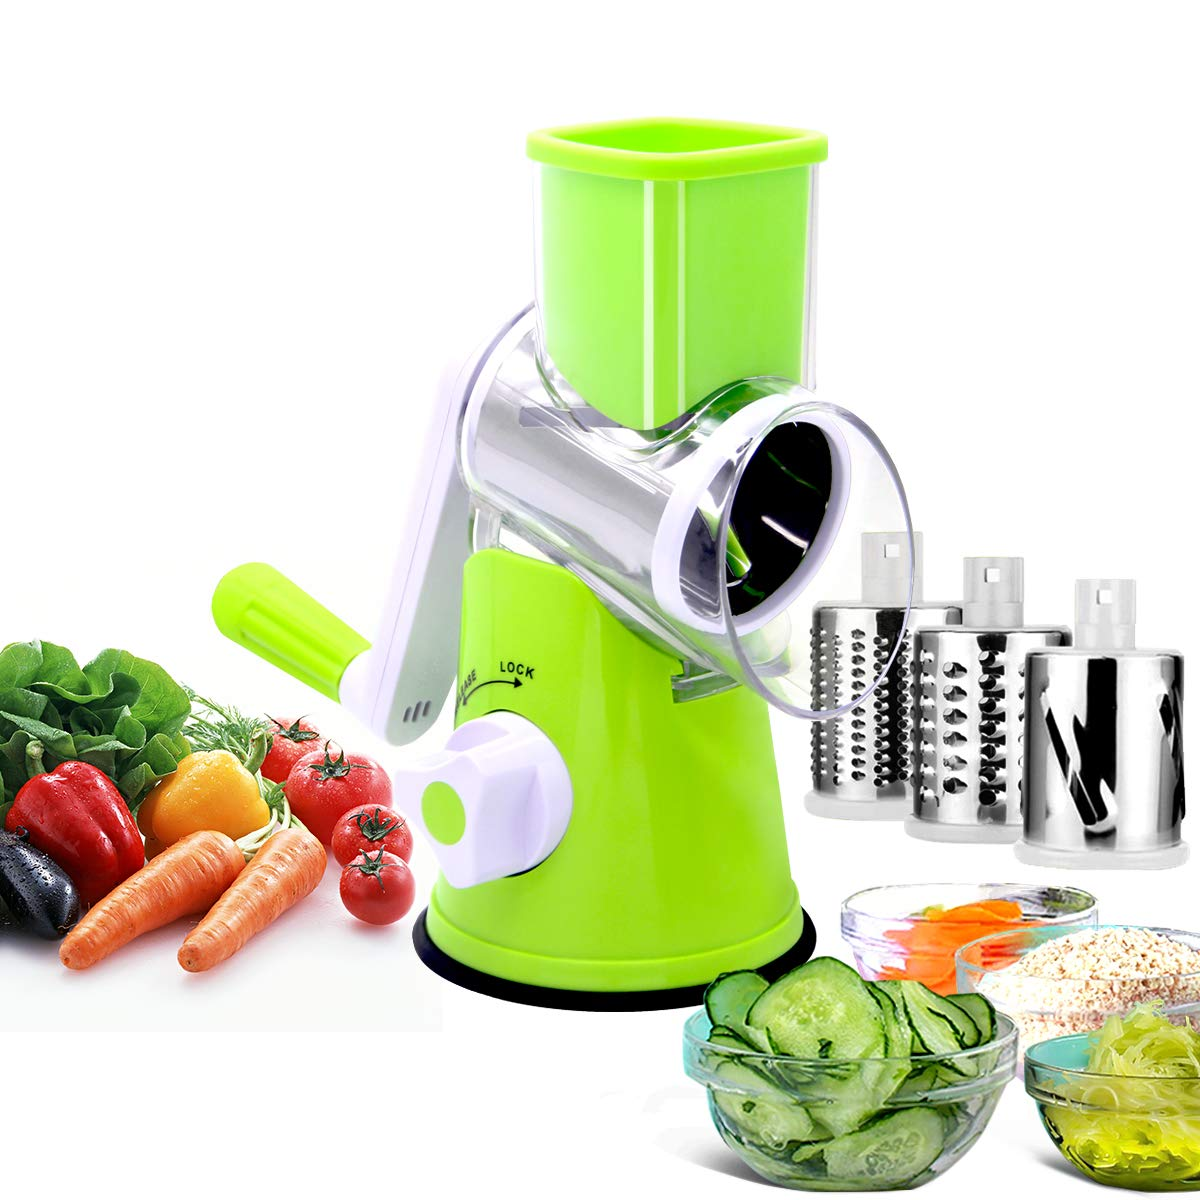 LDK Mandoline Slicer Vegetable Cuber Food Chopper Cheese Cutter - Vertical Rotating Drum Veggie Pasta Salad Maker With 3 Cylinders Stainless Steel Drums (Green)